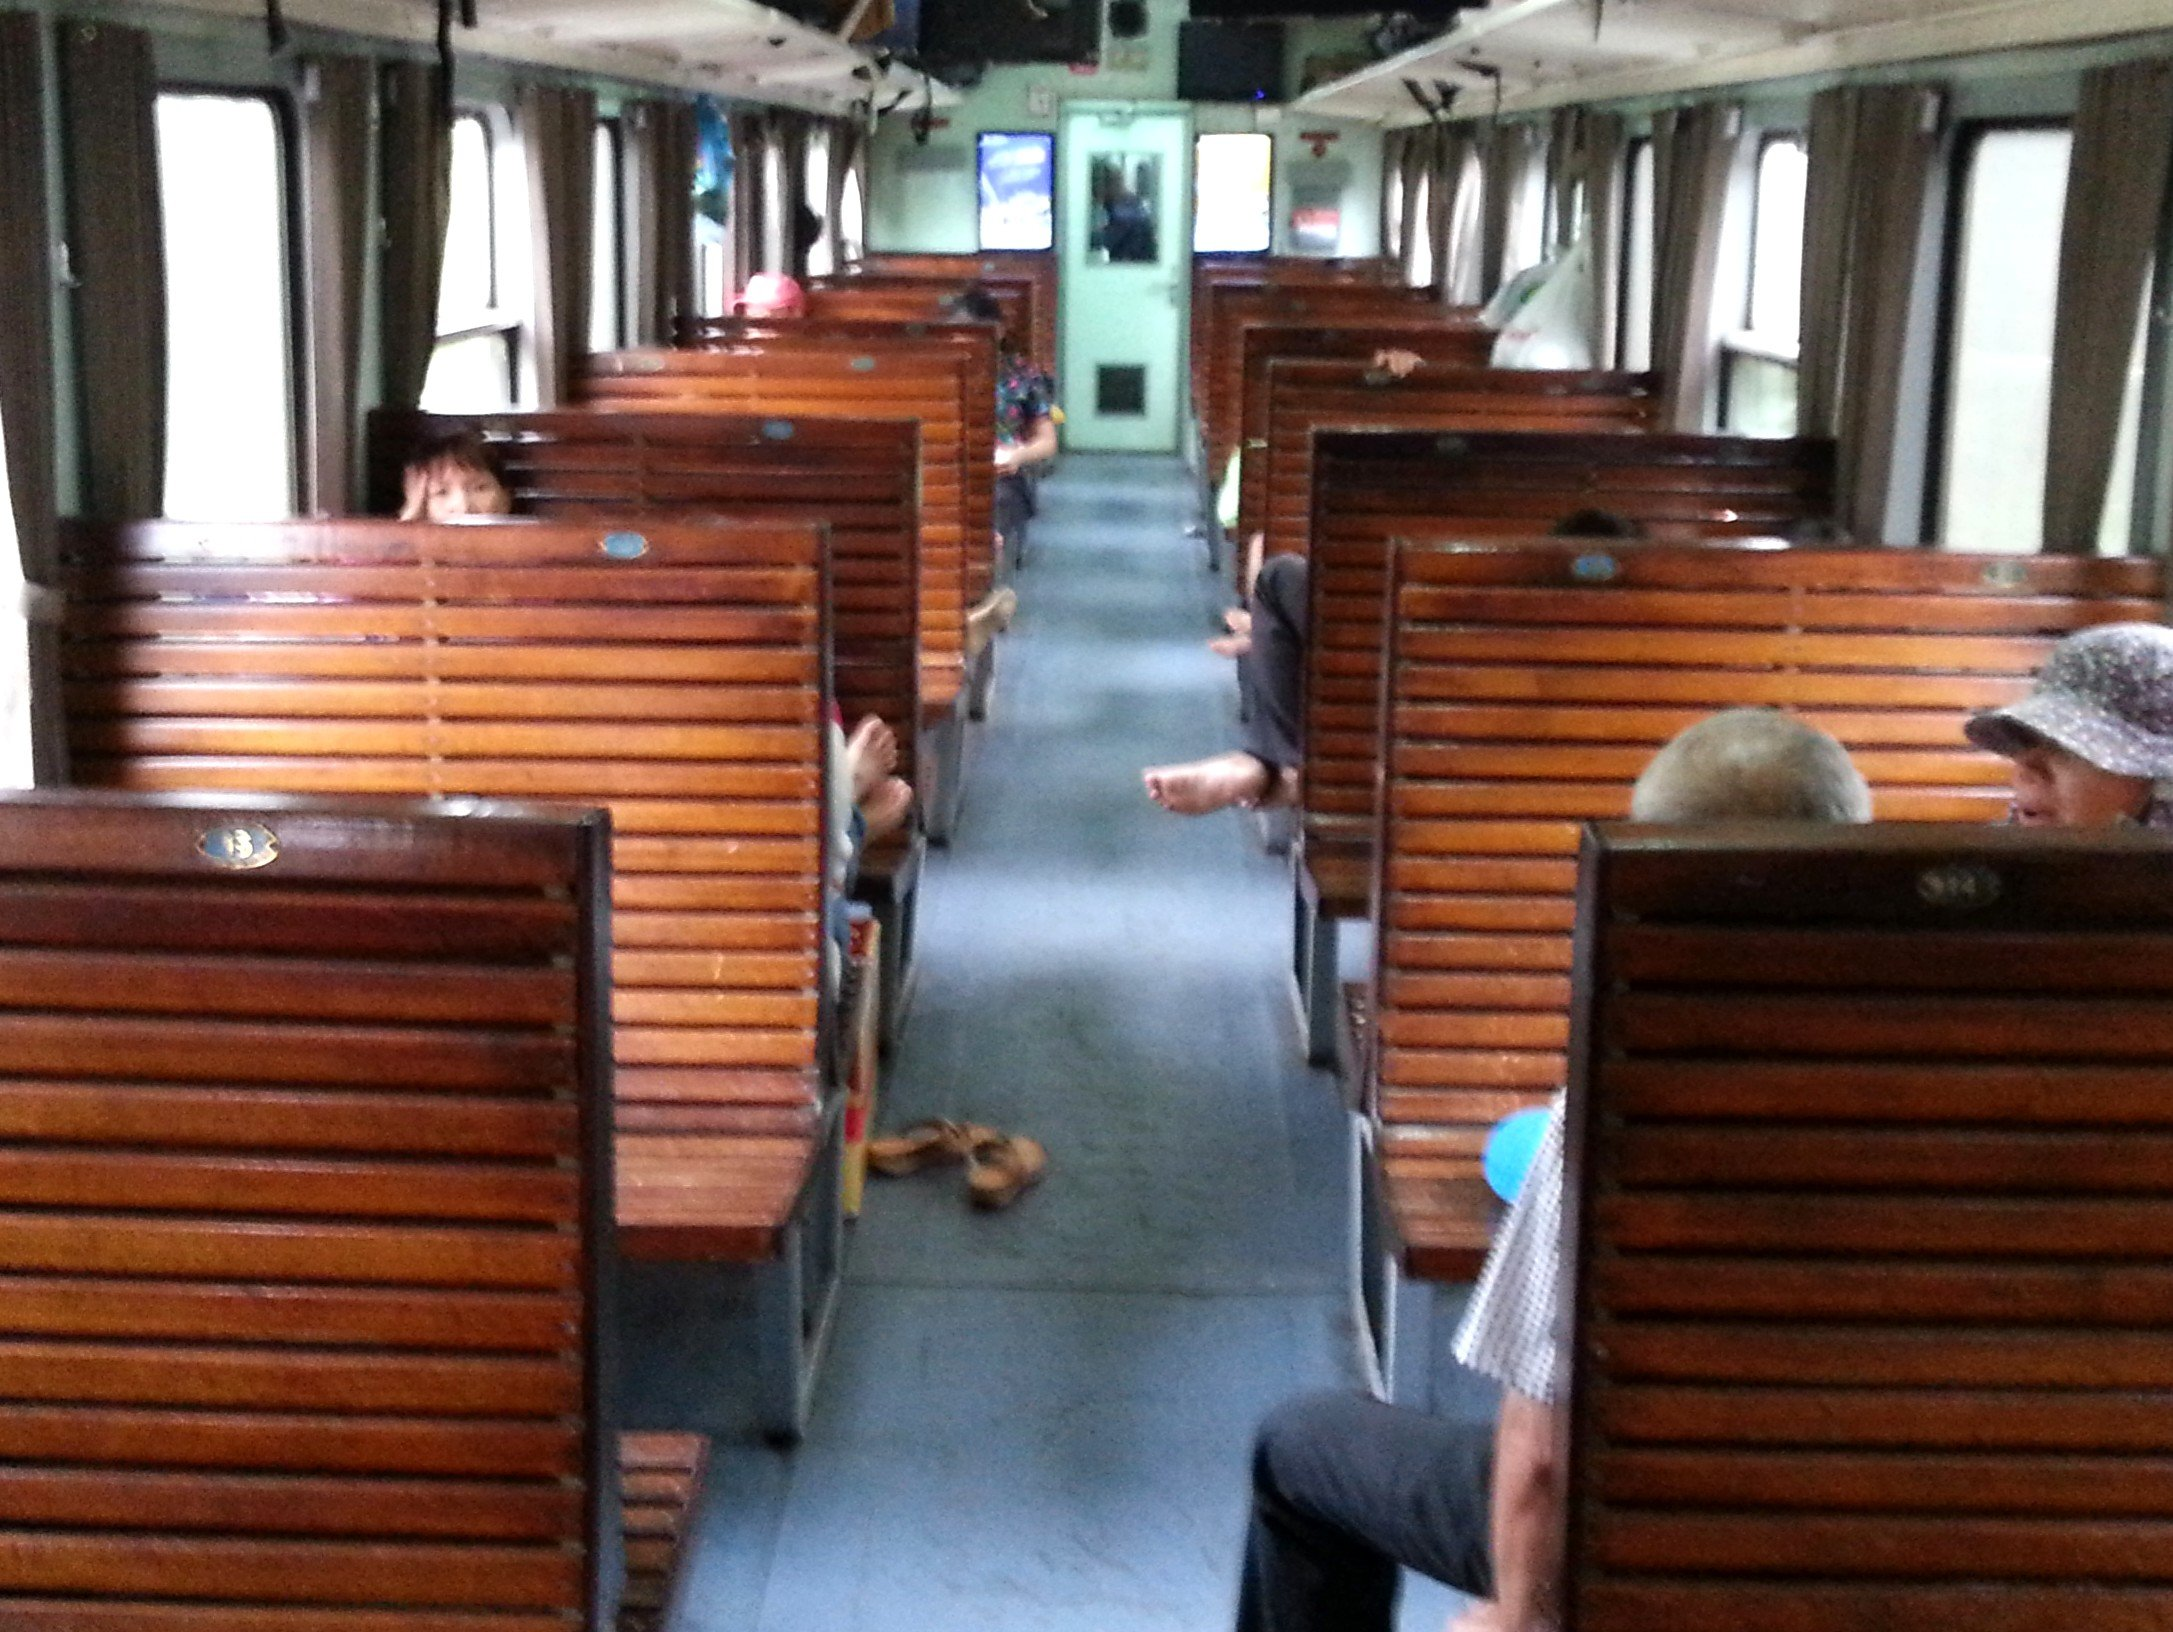 Hard seat carriage on a Vietnam train